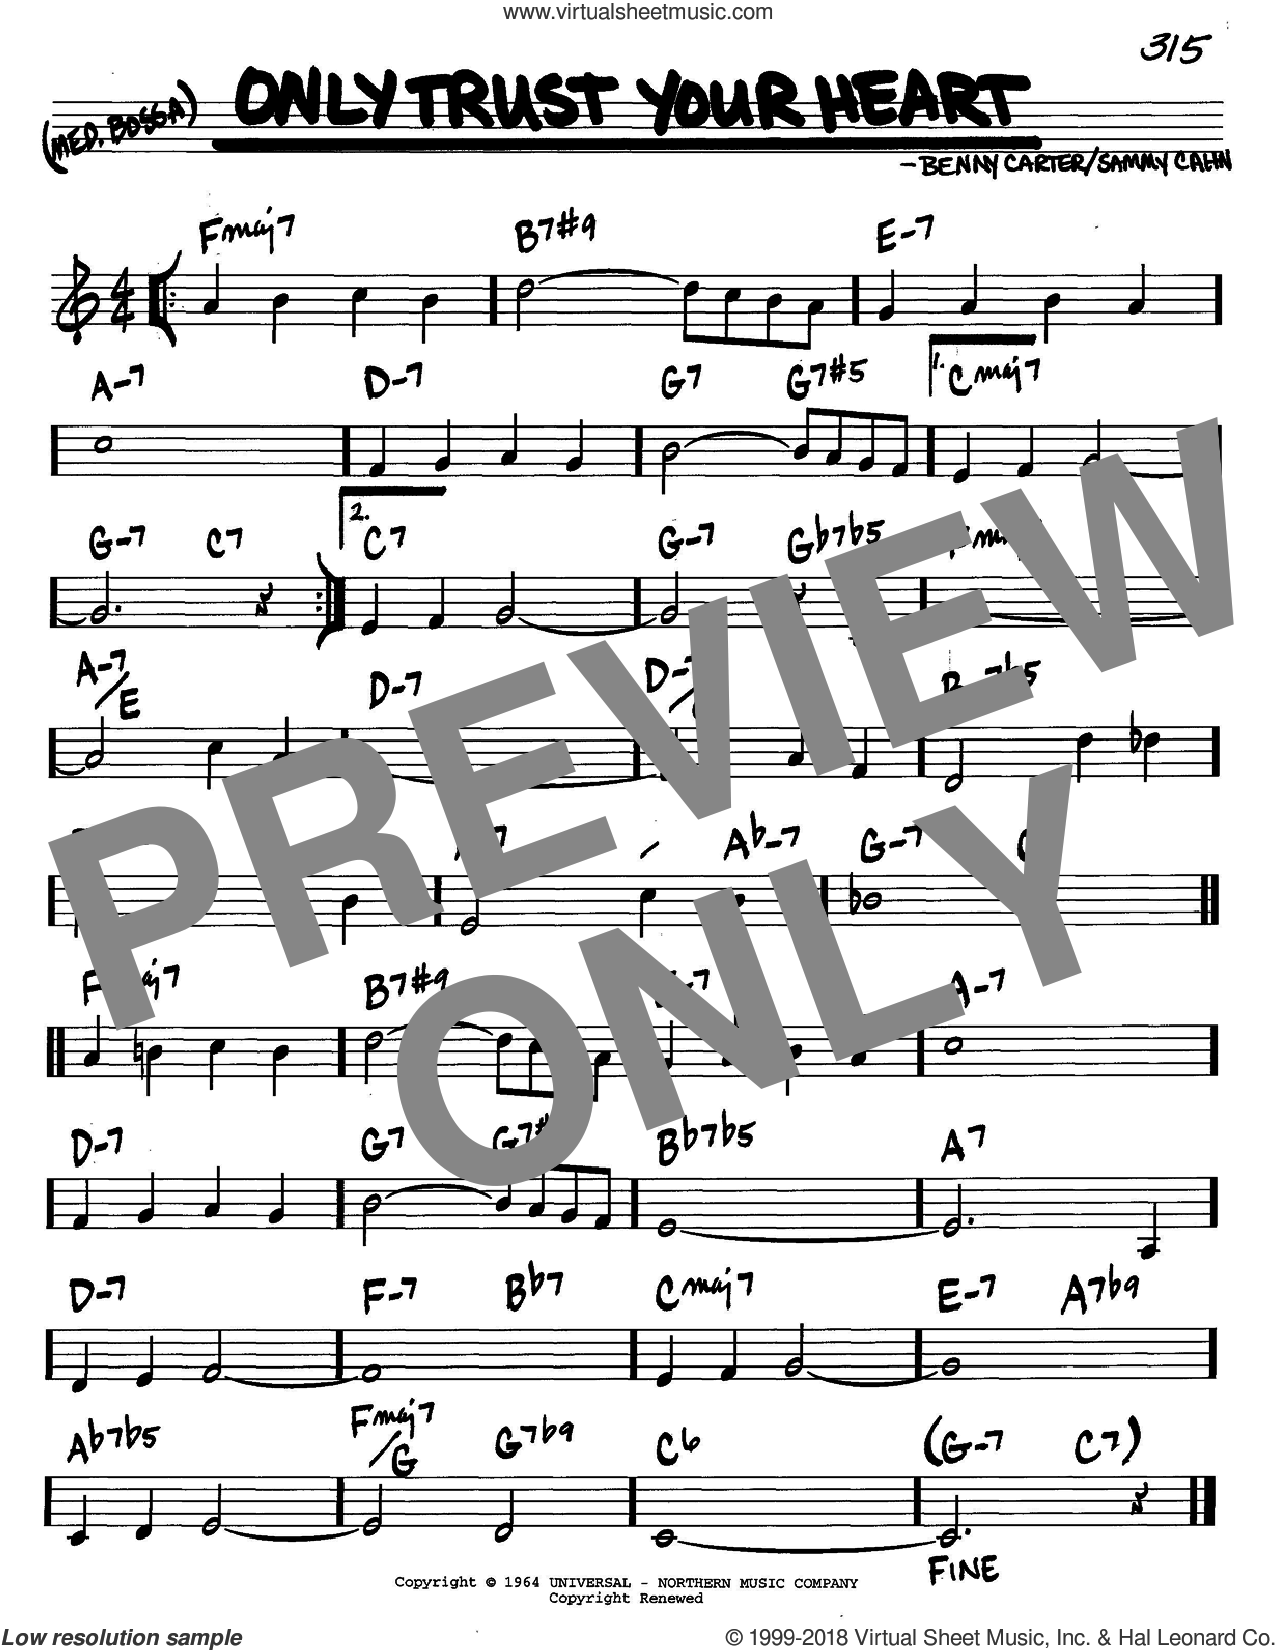 Only Trust Your Heart sheet music for voice and other instruments (C) by Sammy Cahn and Benny Carter, intermediate voice. Score Image Preview.